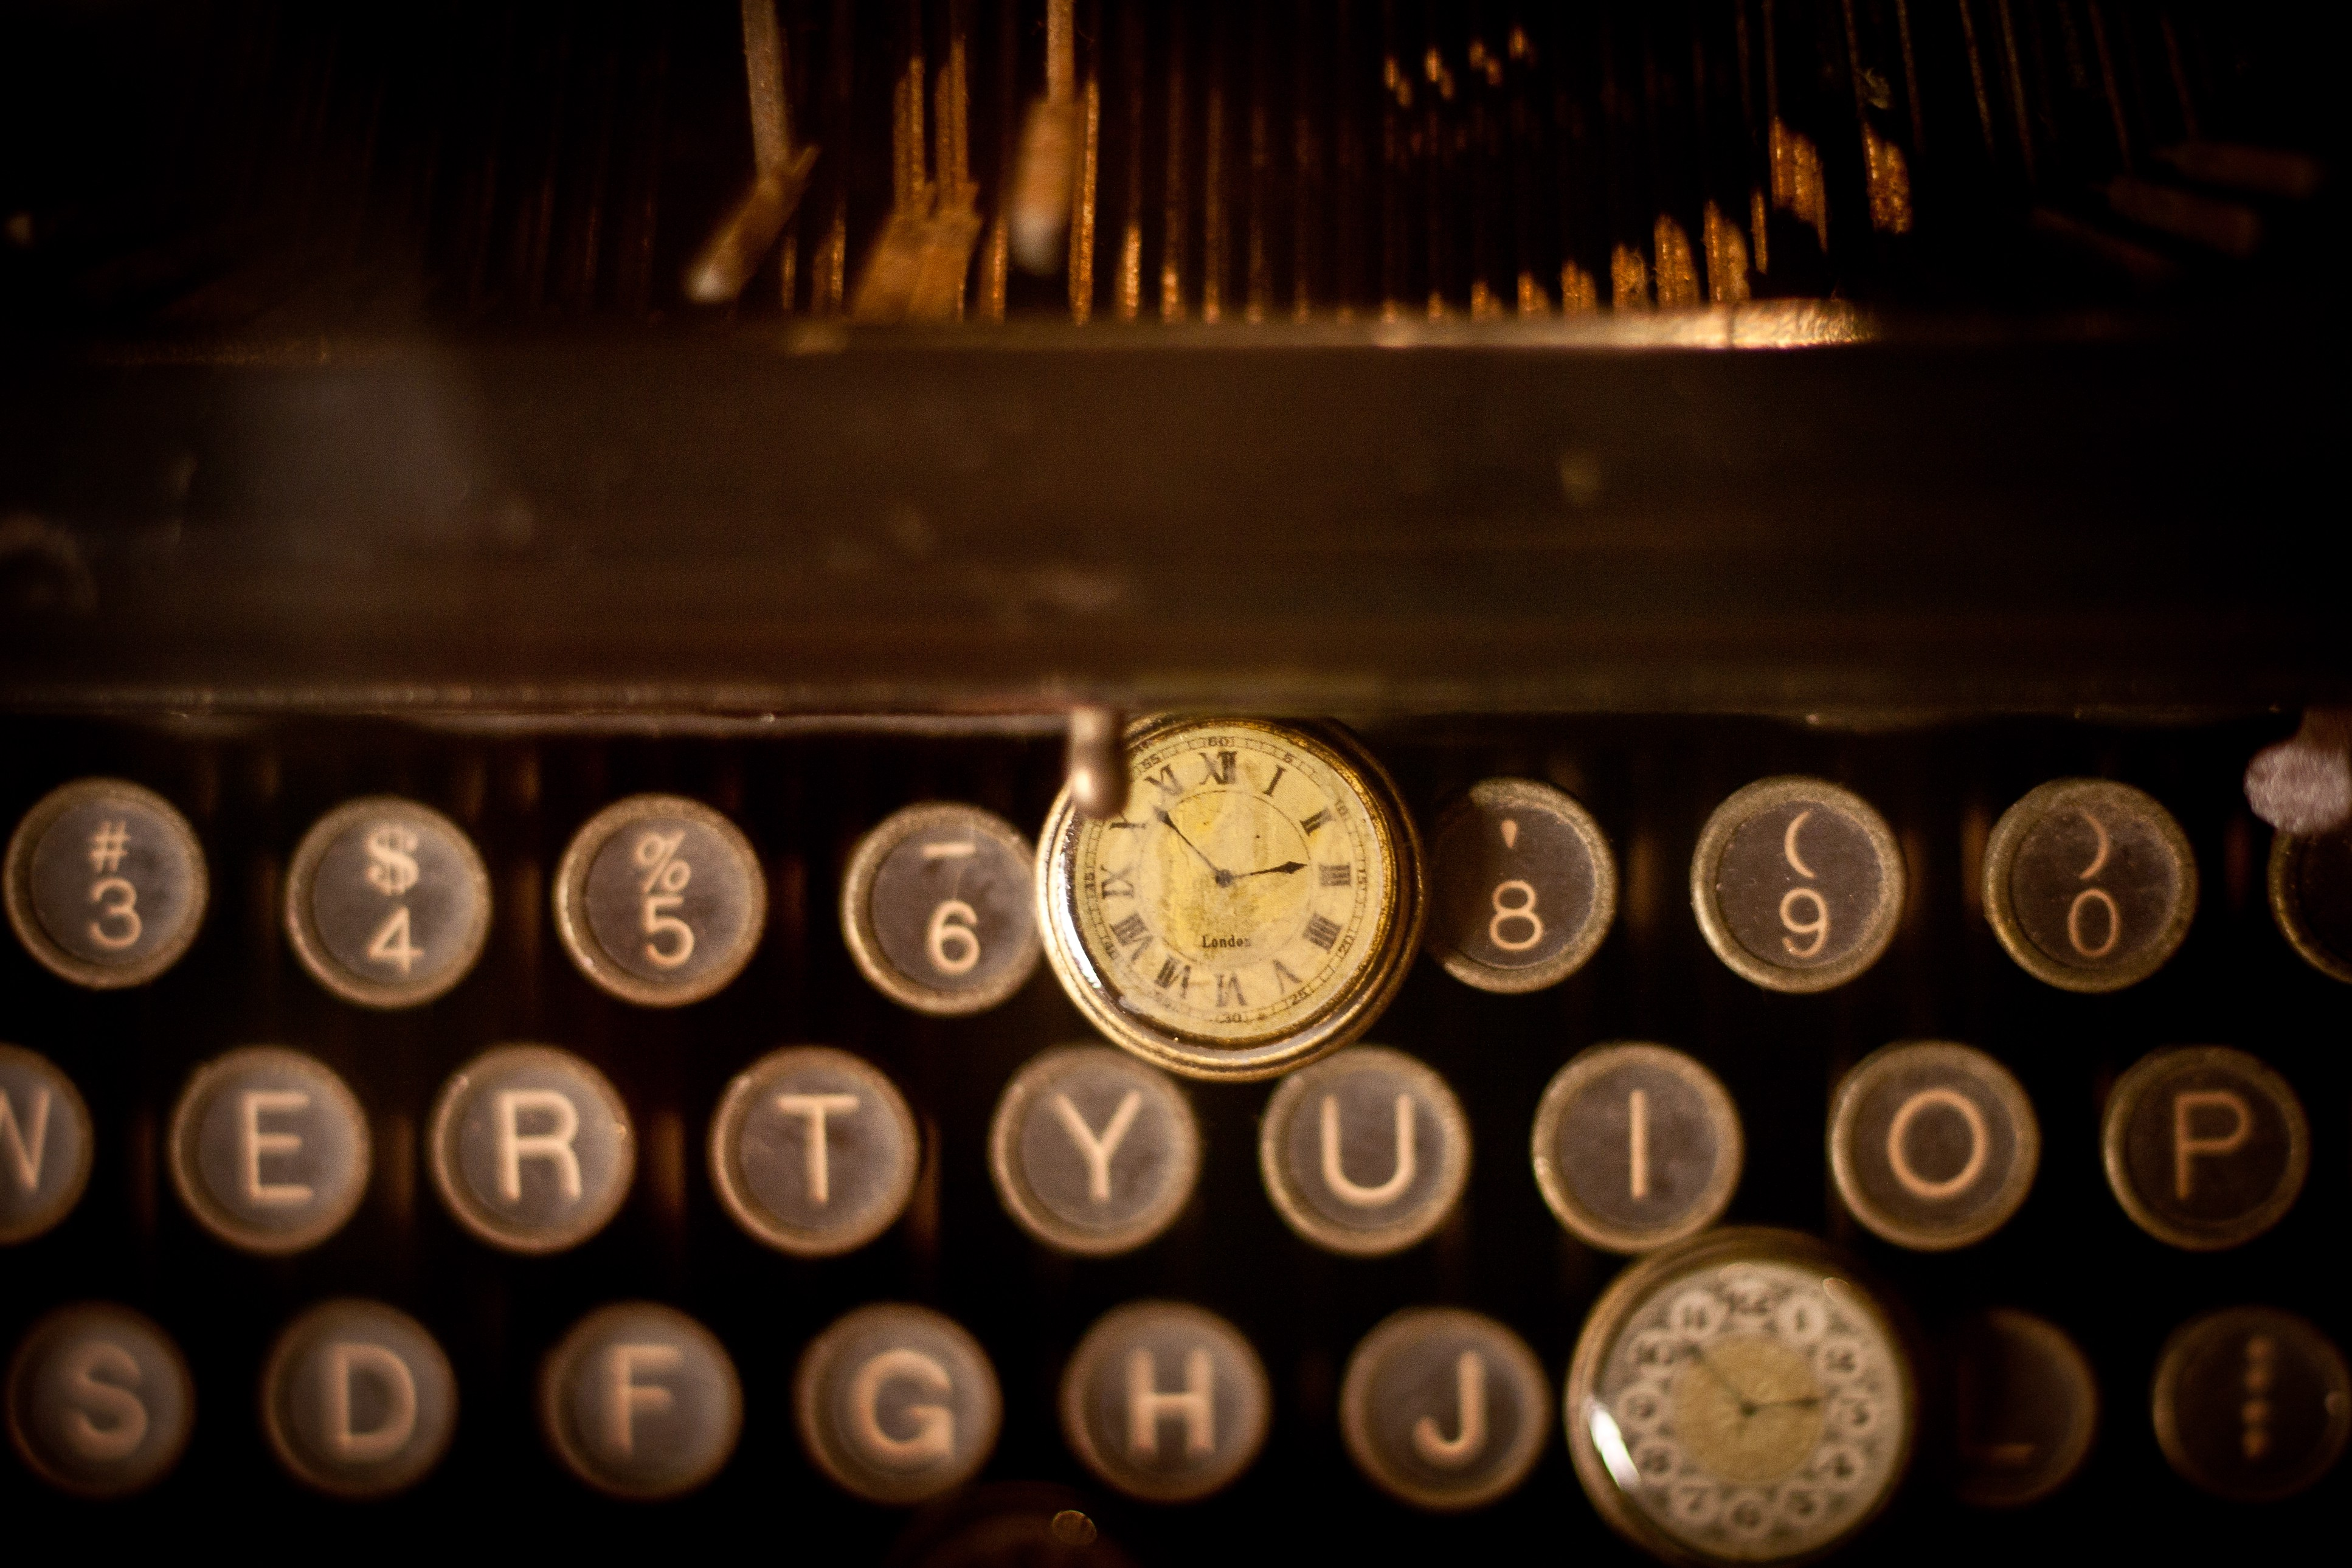 An image of the keys on an old typewriter, and an old clock on top of the keys, to go with my post about the Blogable Fiction Marathon.